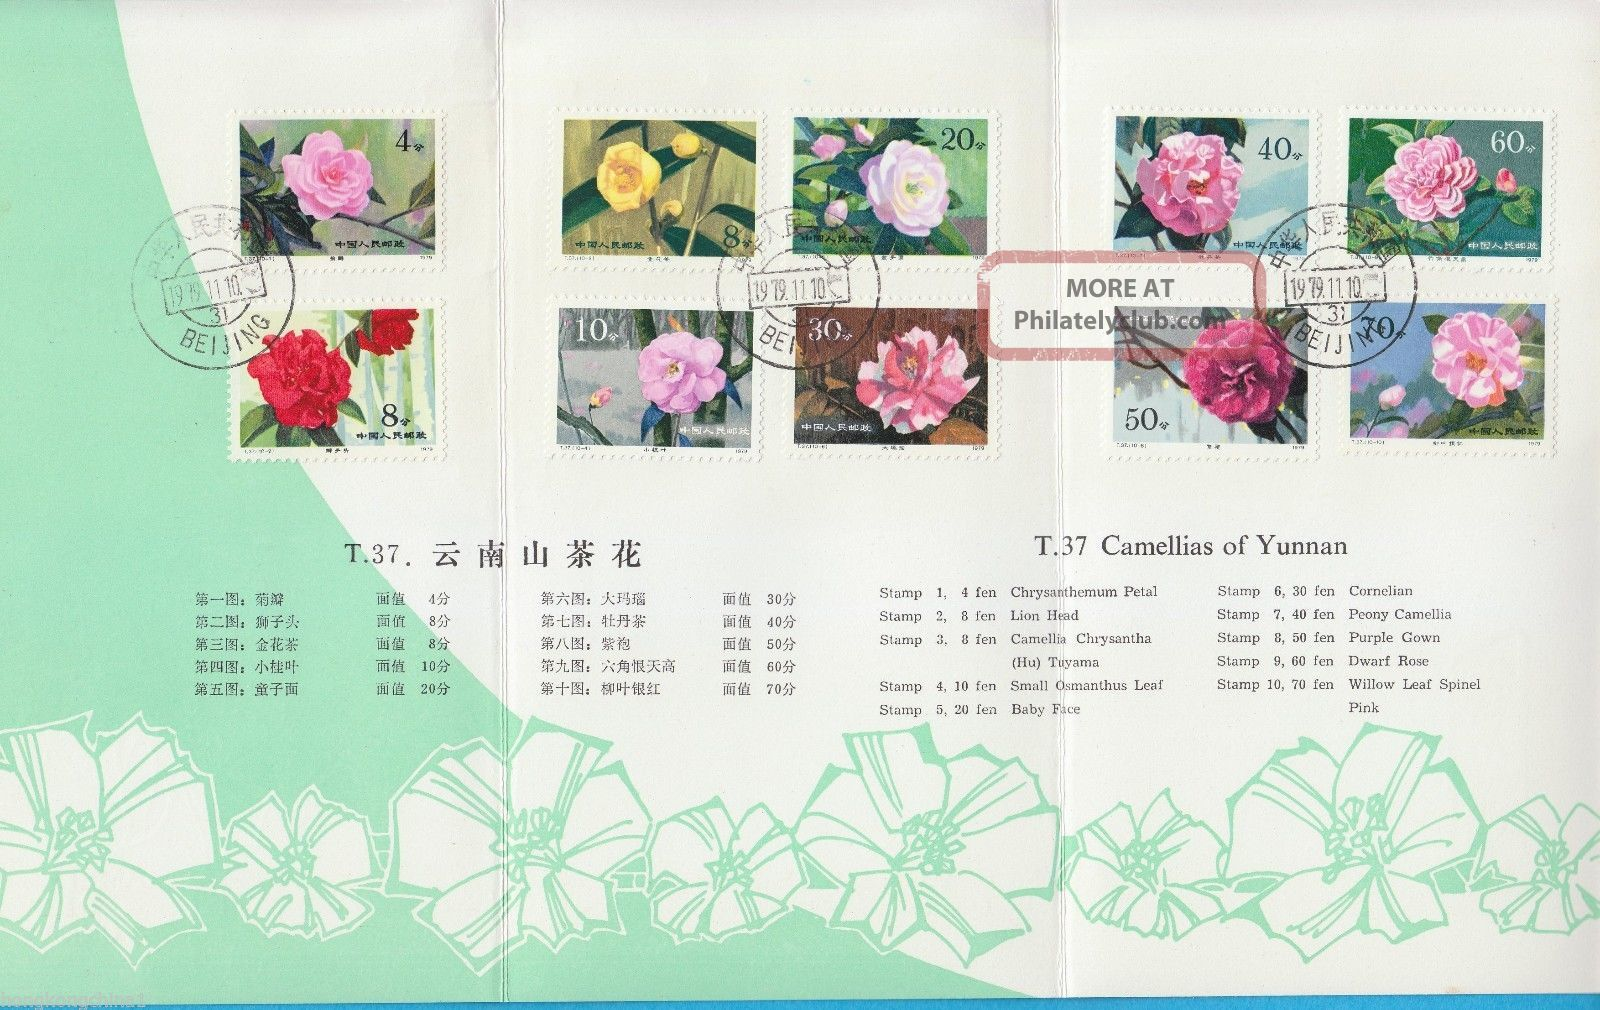 China Stamp Fdc 1979 T37 Camellias Of Yunnan Cn134679 Asia photo